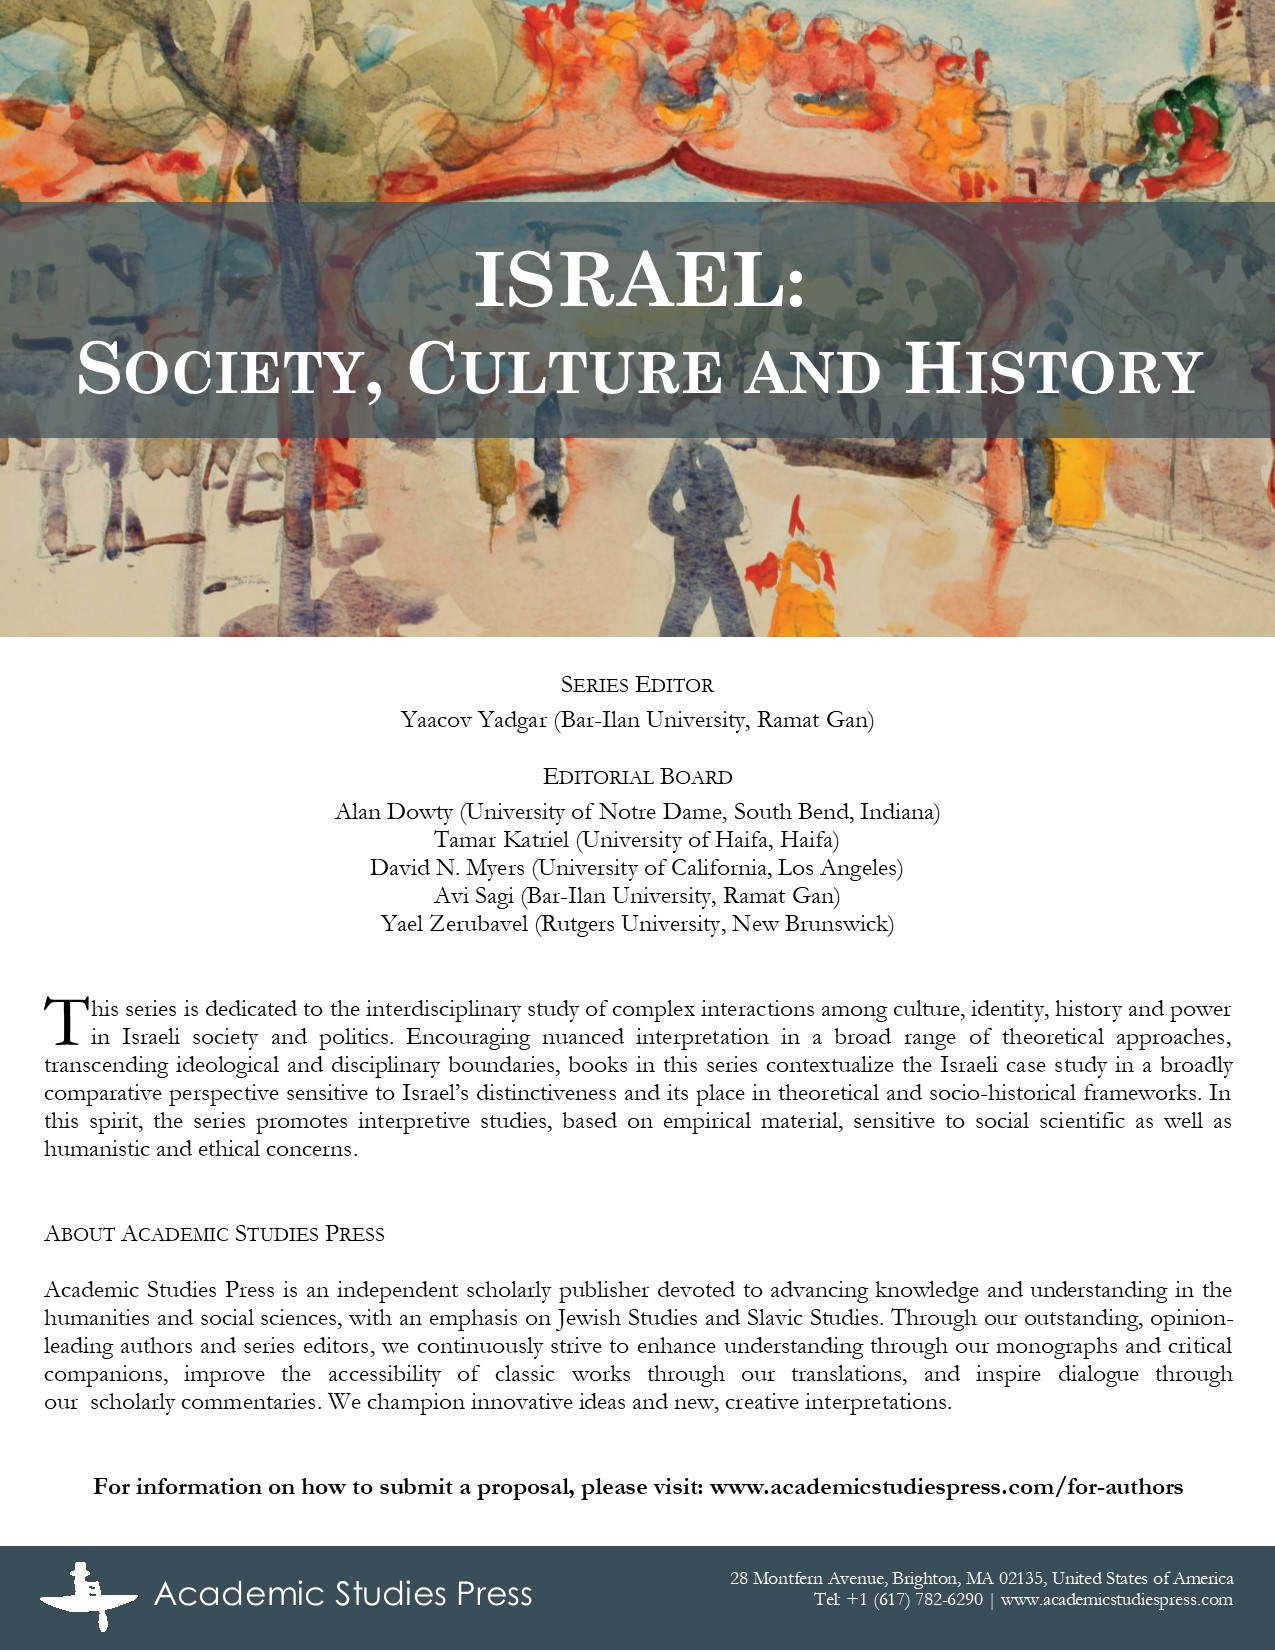 Israel Society Culture and History Flyer.jpg